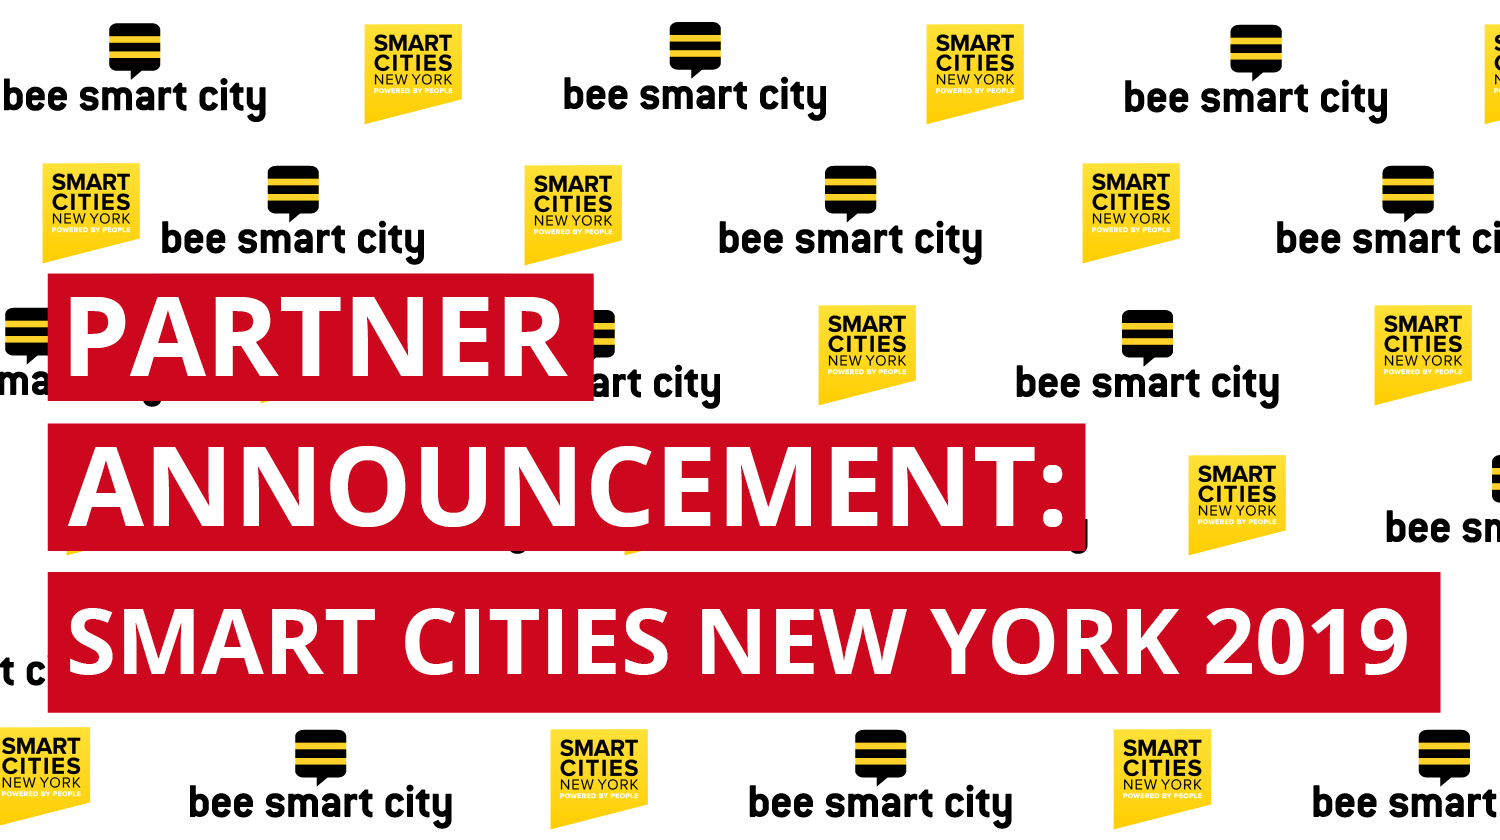 bee smart city and Smart Cities New York continue their strategic partnership